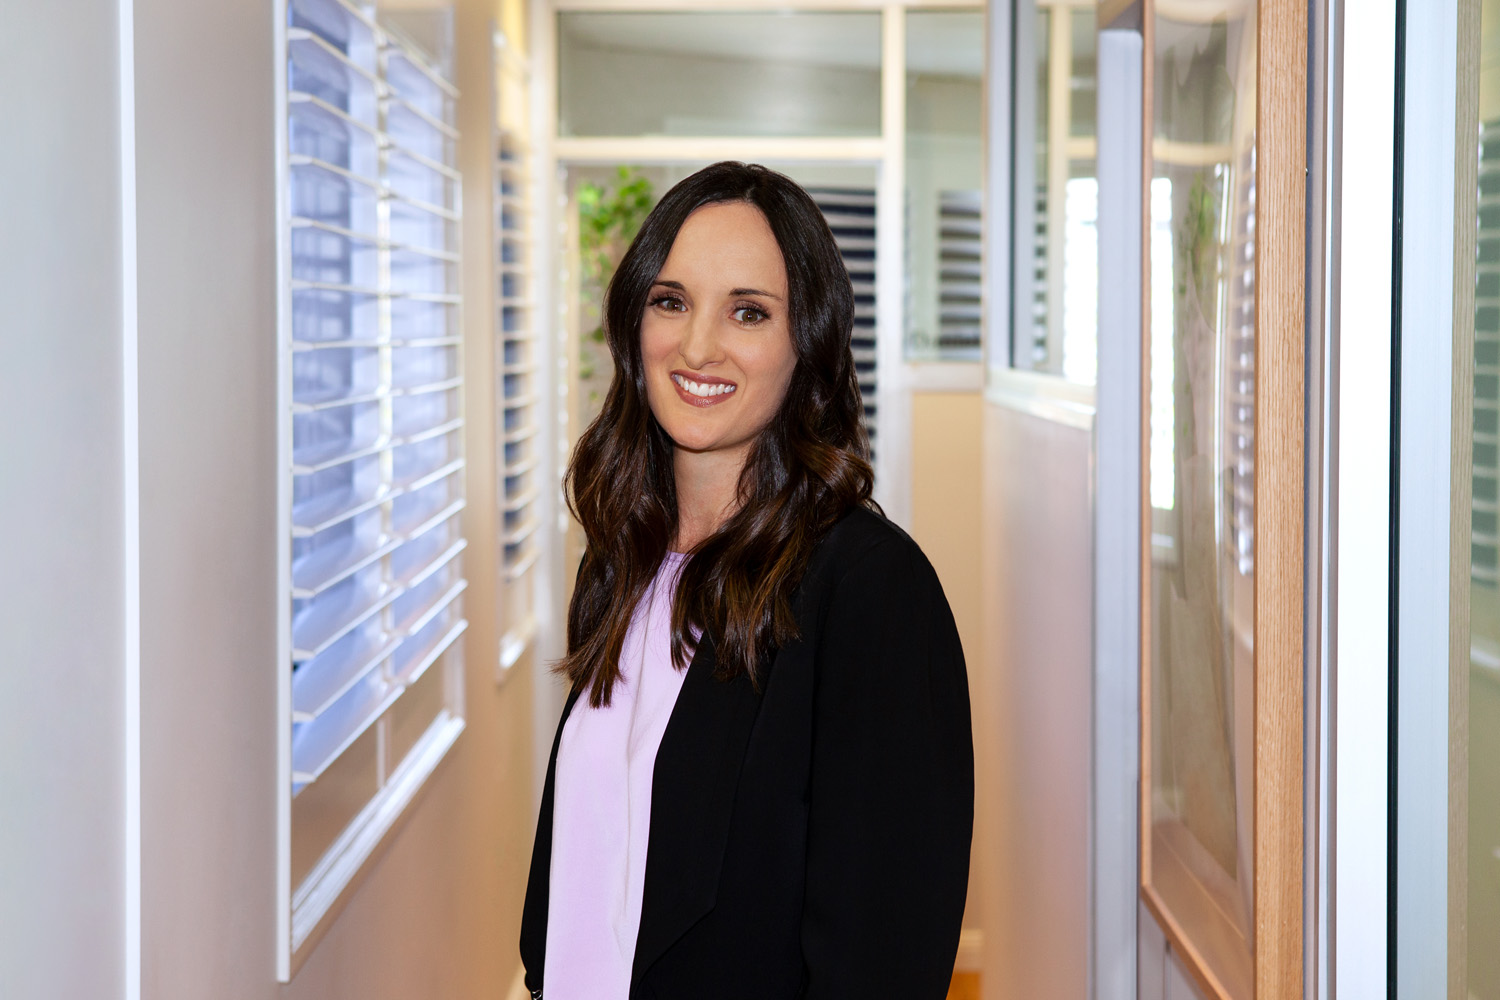 Niki Hamilton; conveyancing lawyer; gold coast branding photography; business profile photography; gold coast business photography; gold coast law; gold coast lawyers; gold coast commercial photography; gold coast headshot photography; gold coast photographer; gold coast business photographer; bundall photographer; benowa photographer; lana noir; DSL Law; @lananoir